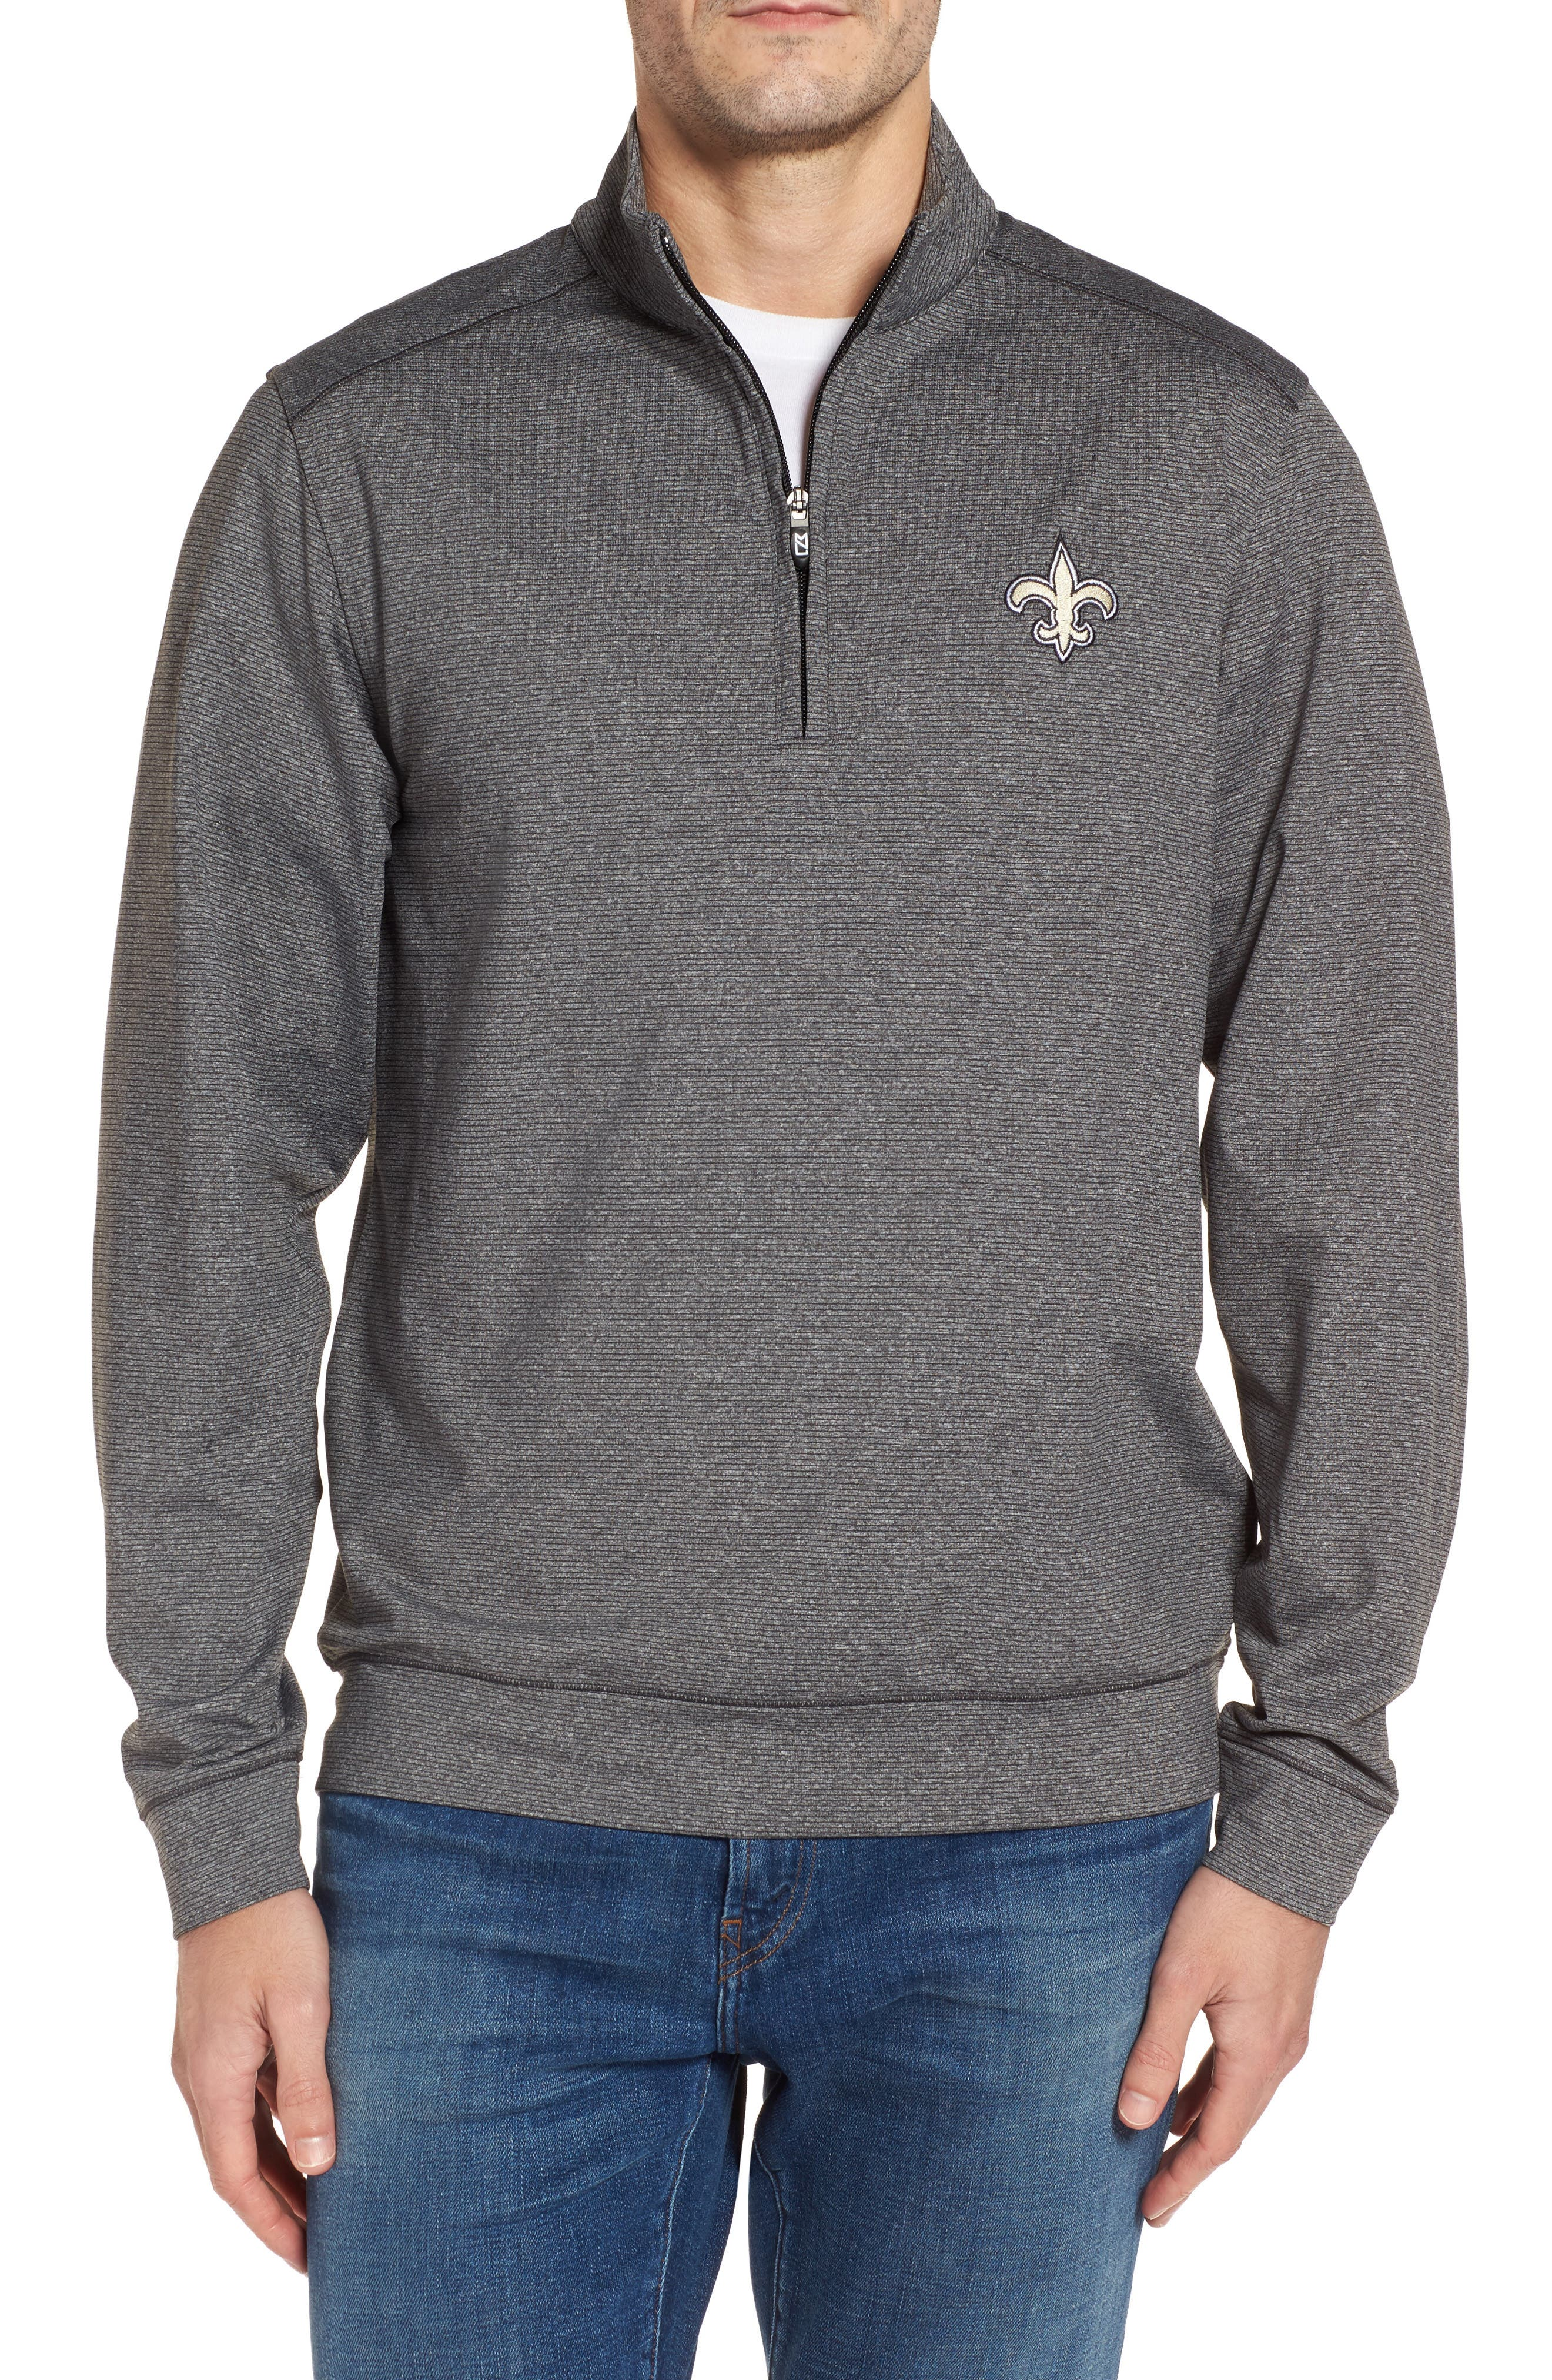 Shoreline - New Orleans Saints Half Zip Pullover,                             Main thumbnail 1, color,                             020